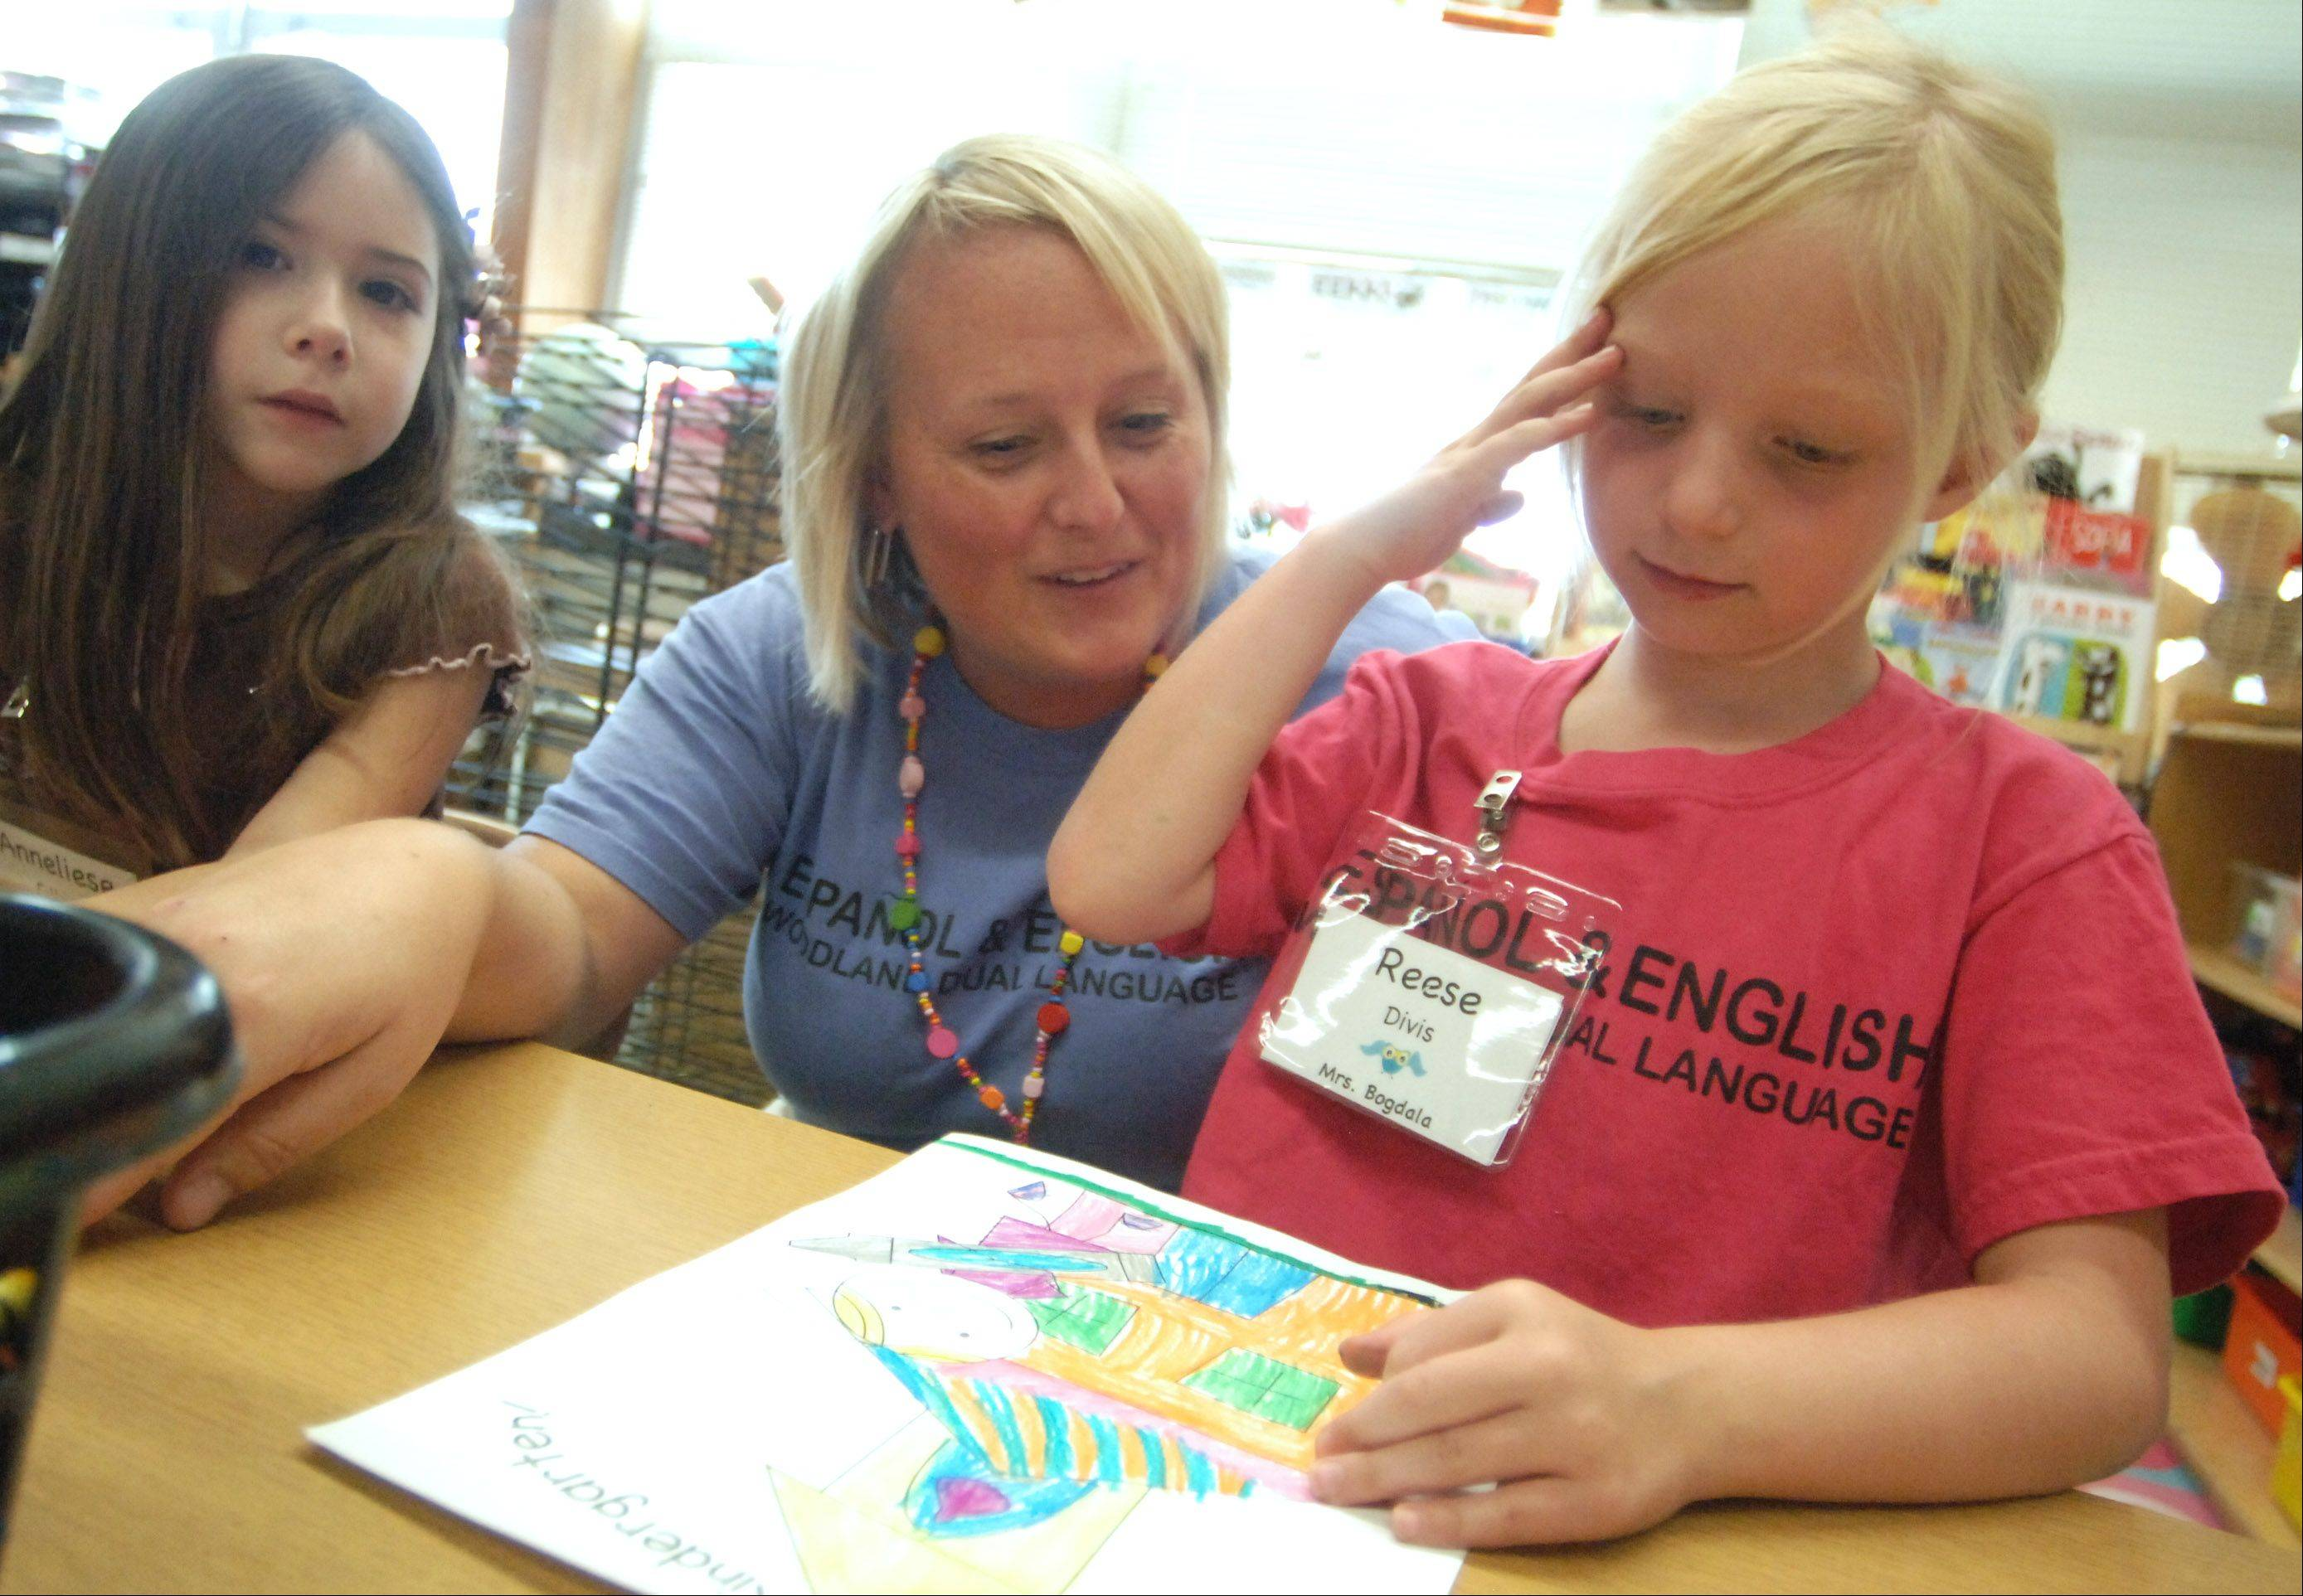 Woodland Primary School dual-language kindergarten teacher Rian Bogdala works with students Annaliese Filkins, left, and Reese Divis on Thursday.